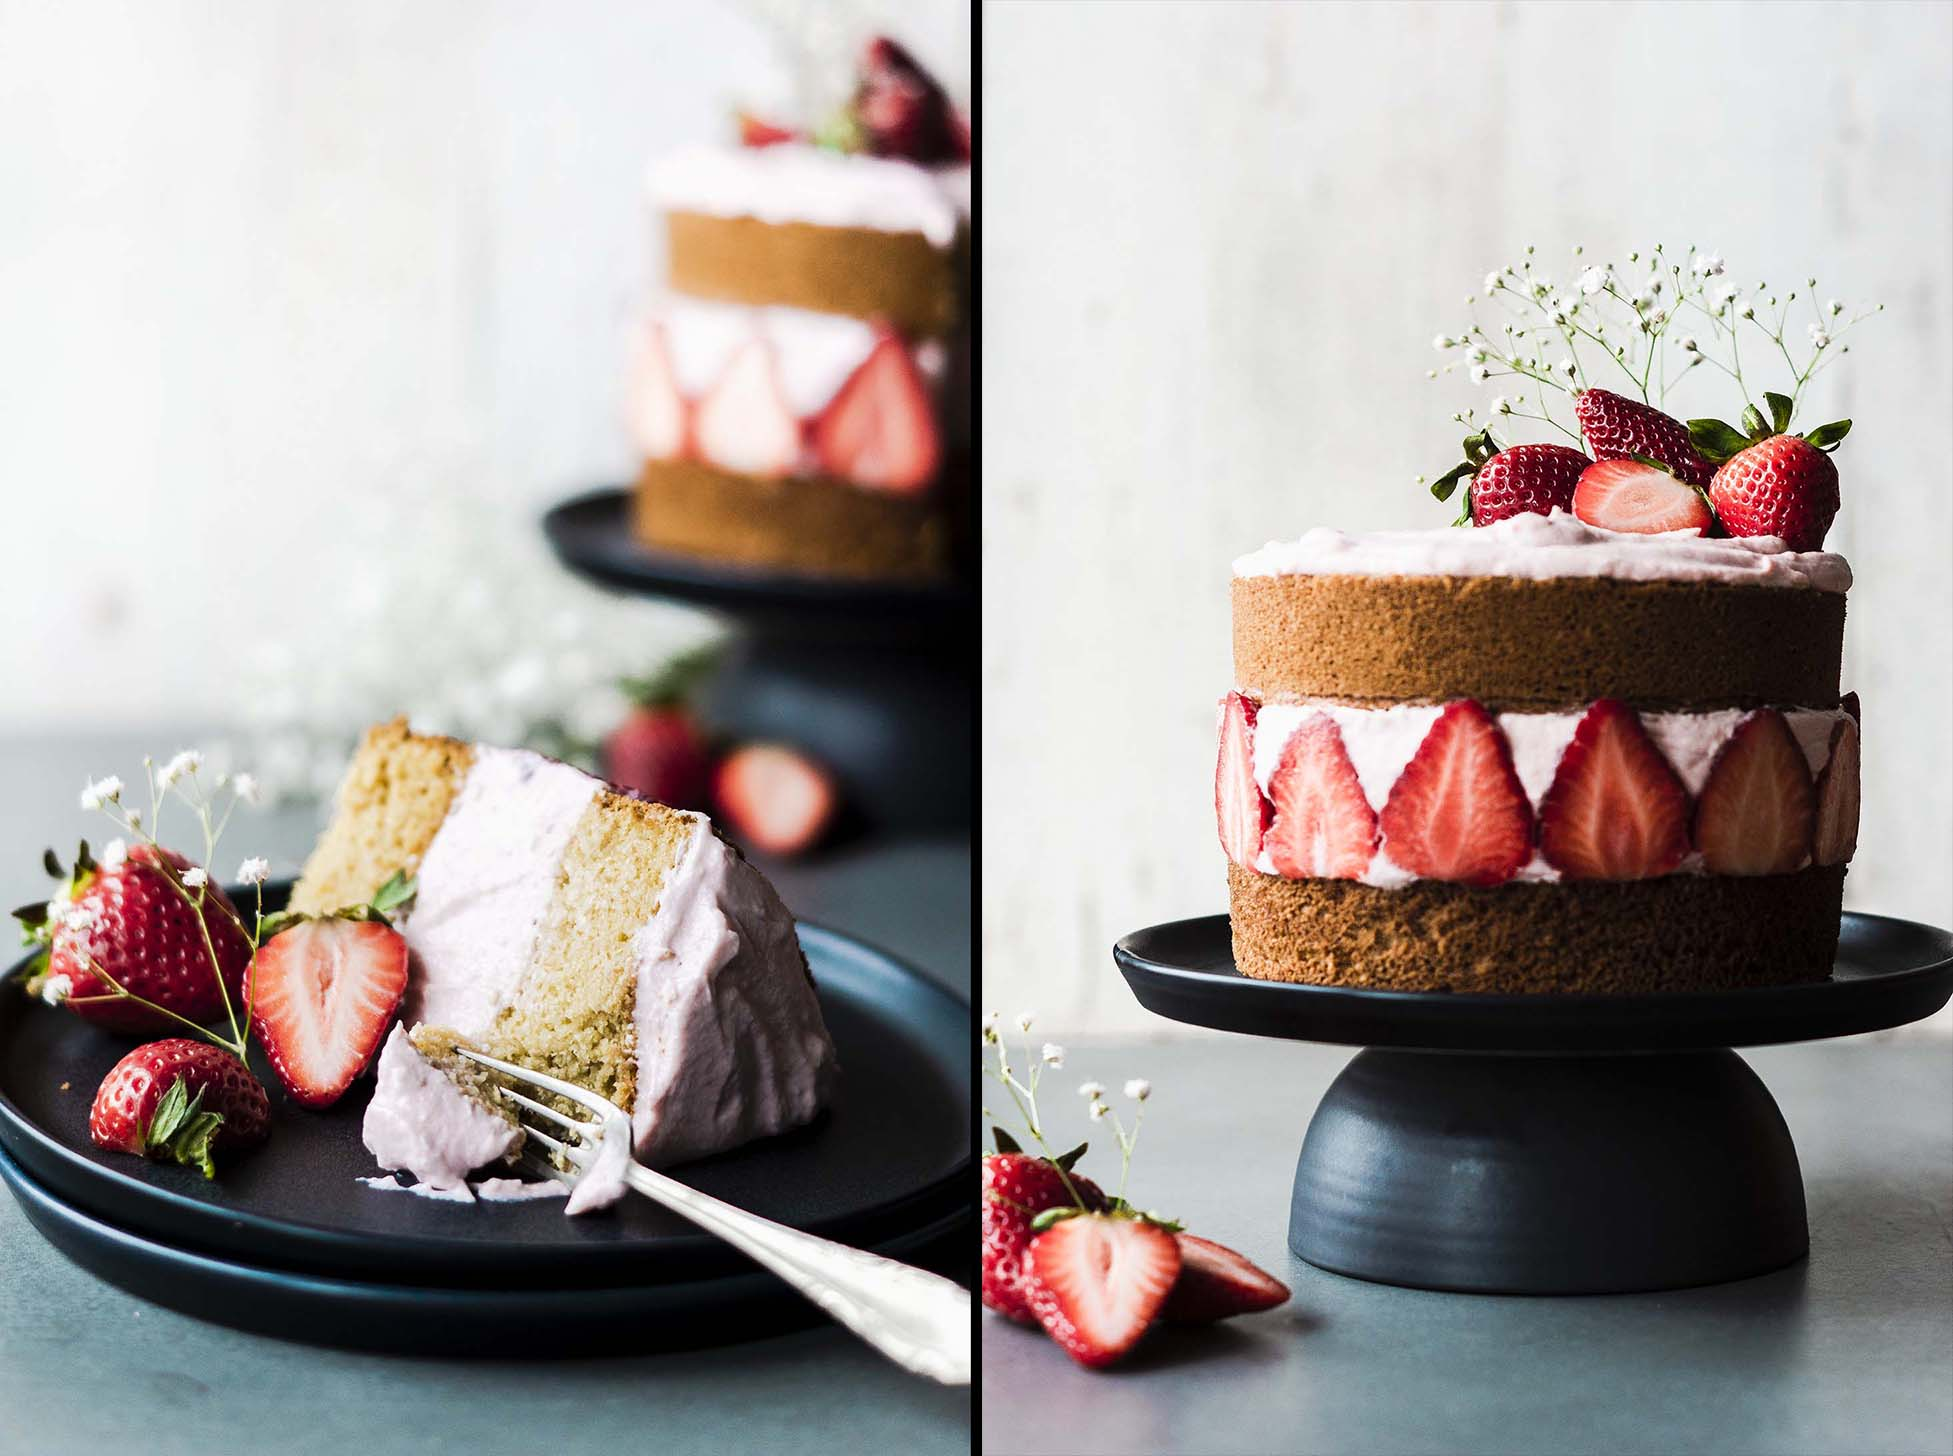 Dive into a piece of this Strawberry Mascarpone Coconut Cake